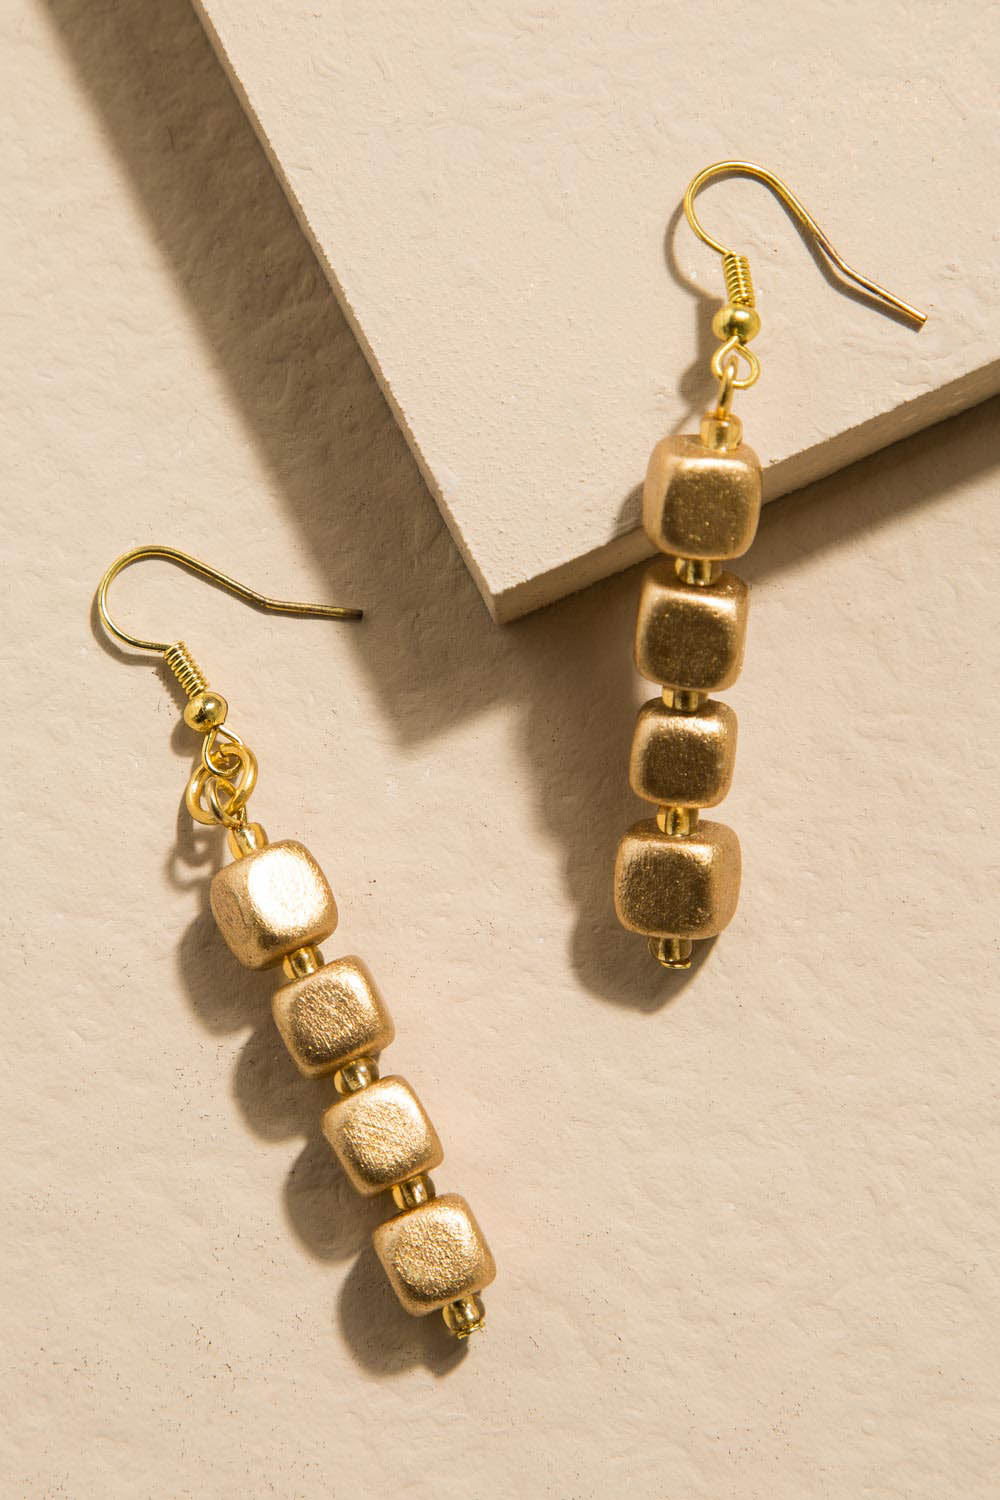 Type 3 The Golden Cube Earrings